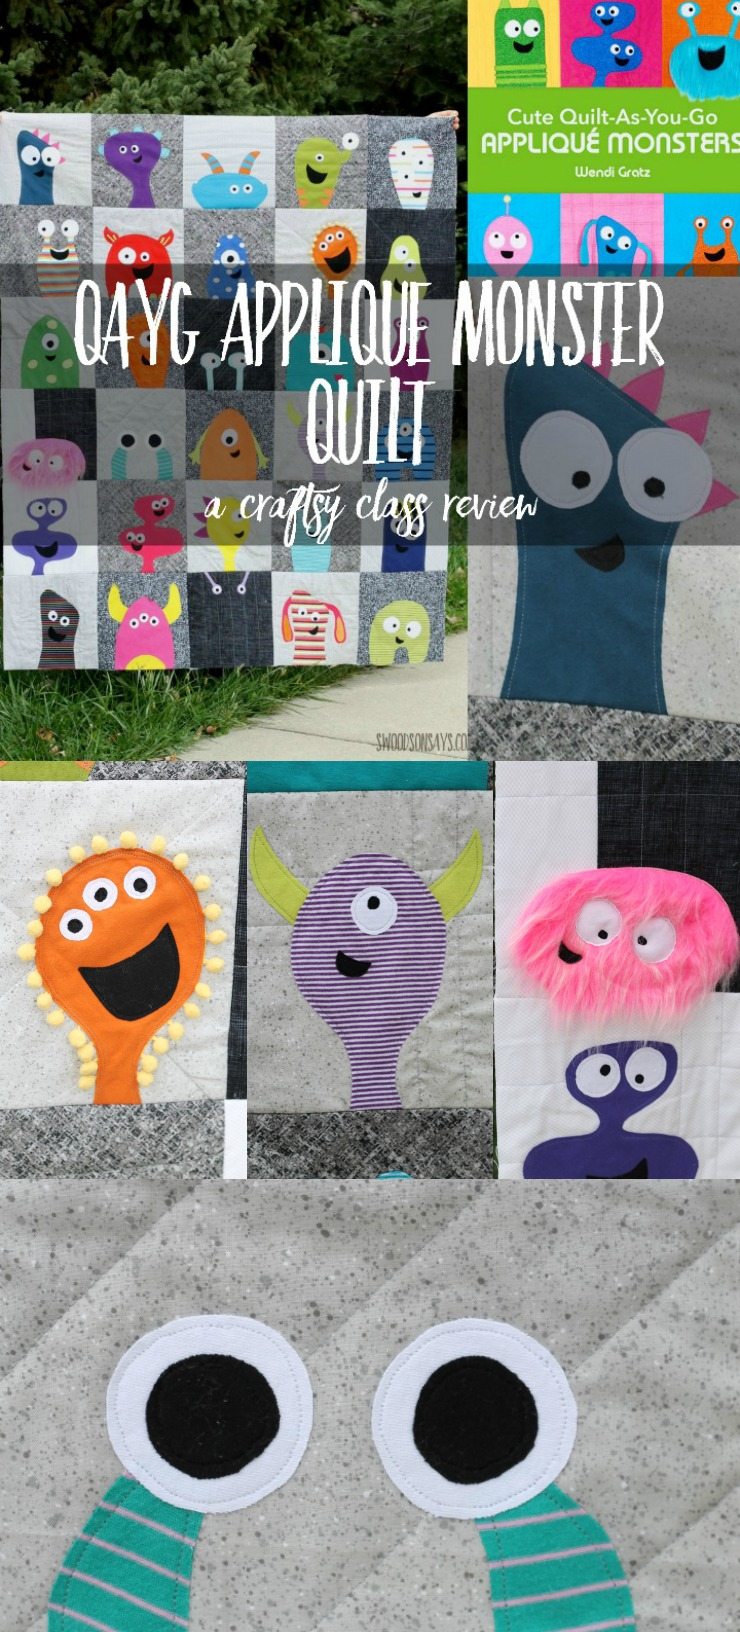 Beginner friendly quilt alert! This is a fun and easy Craftsy class that I'm reviewing, to make your own quilt-as-you-go applique monster quilt.